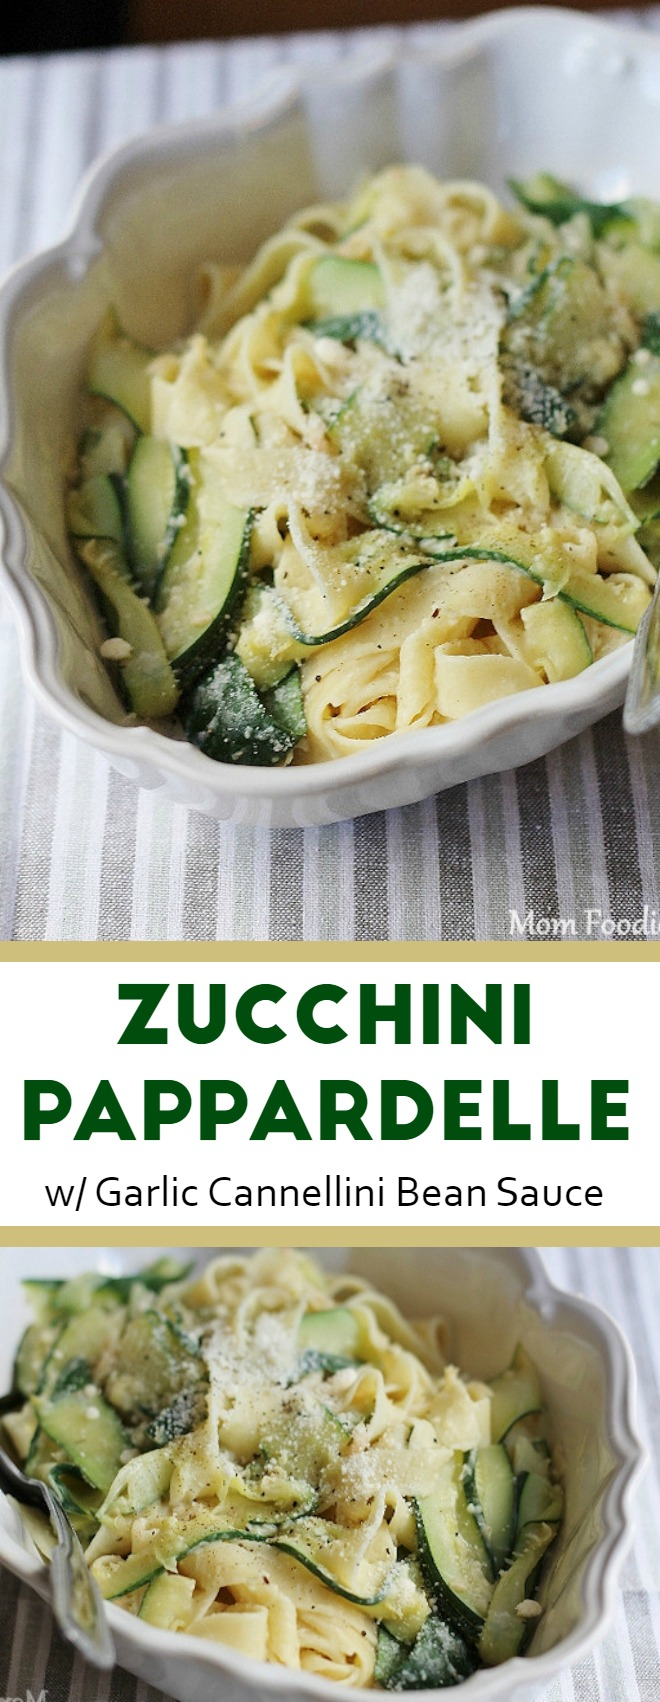 Zucchini Ribbons and Pappardelle with Garlic Cannellini Bean Sauce - Vegetarian Pasta Recipe